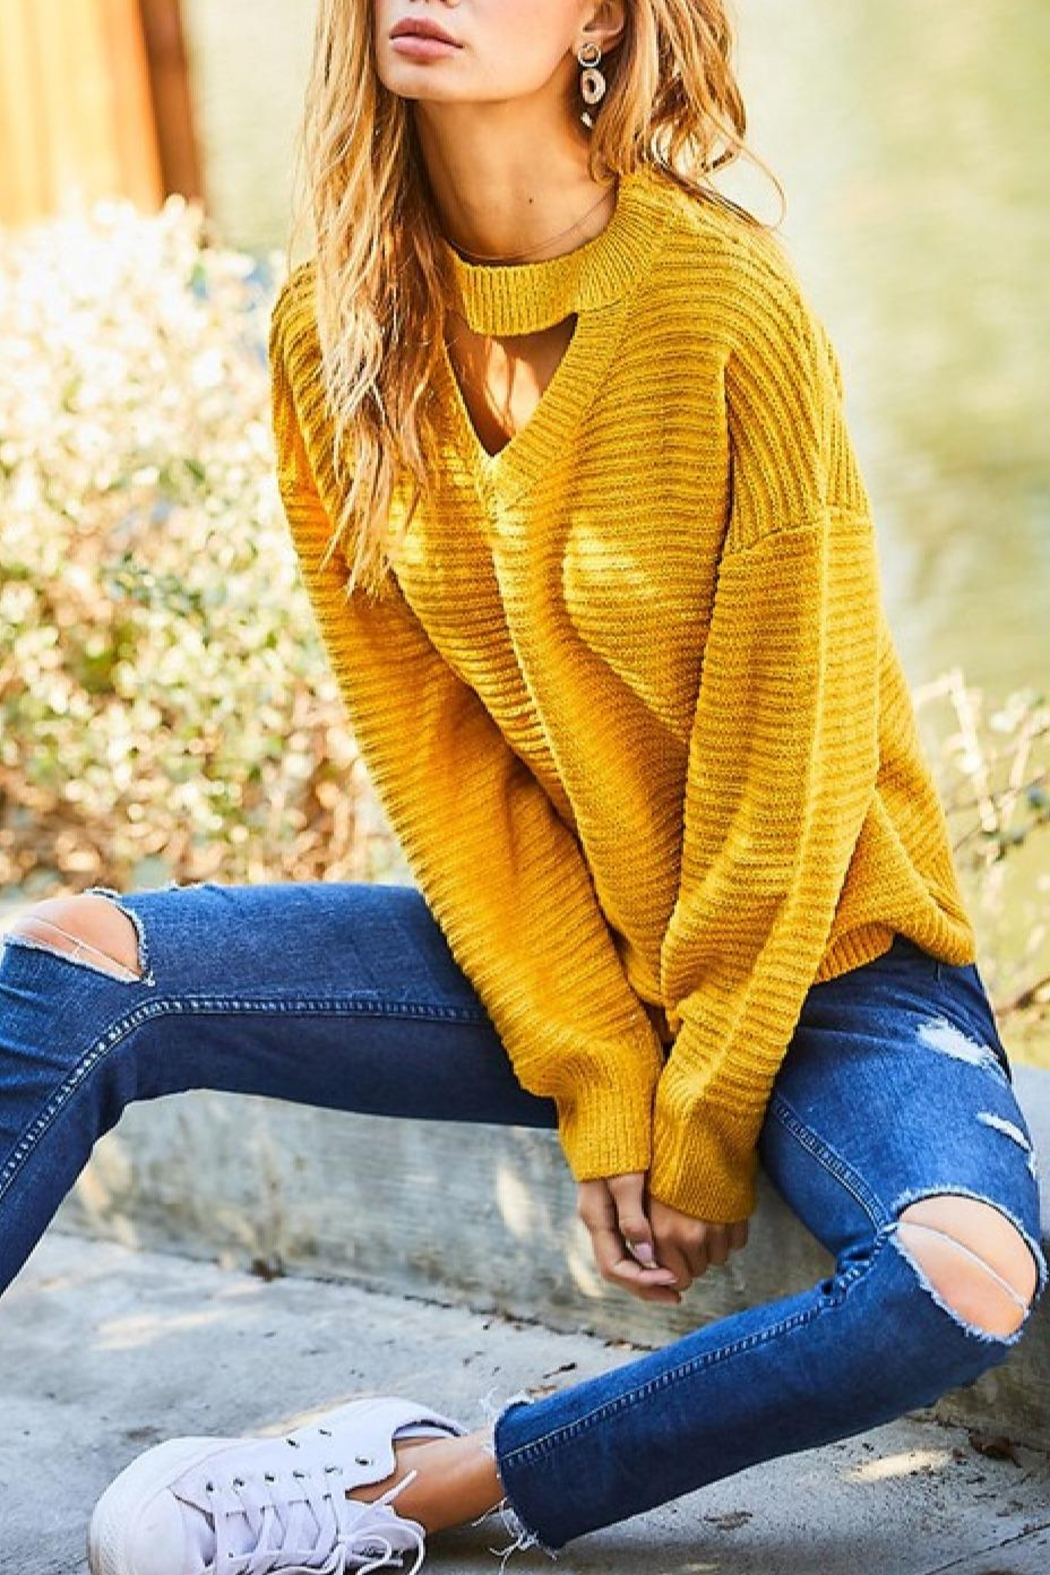 Main Strip Aletta Mustard Sweater - Main Image